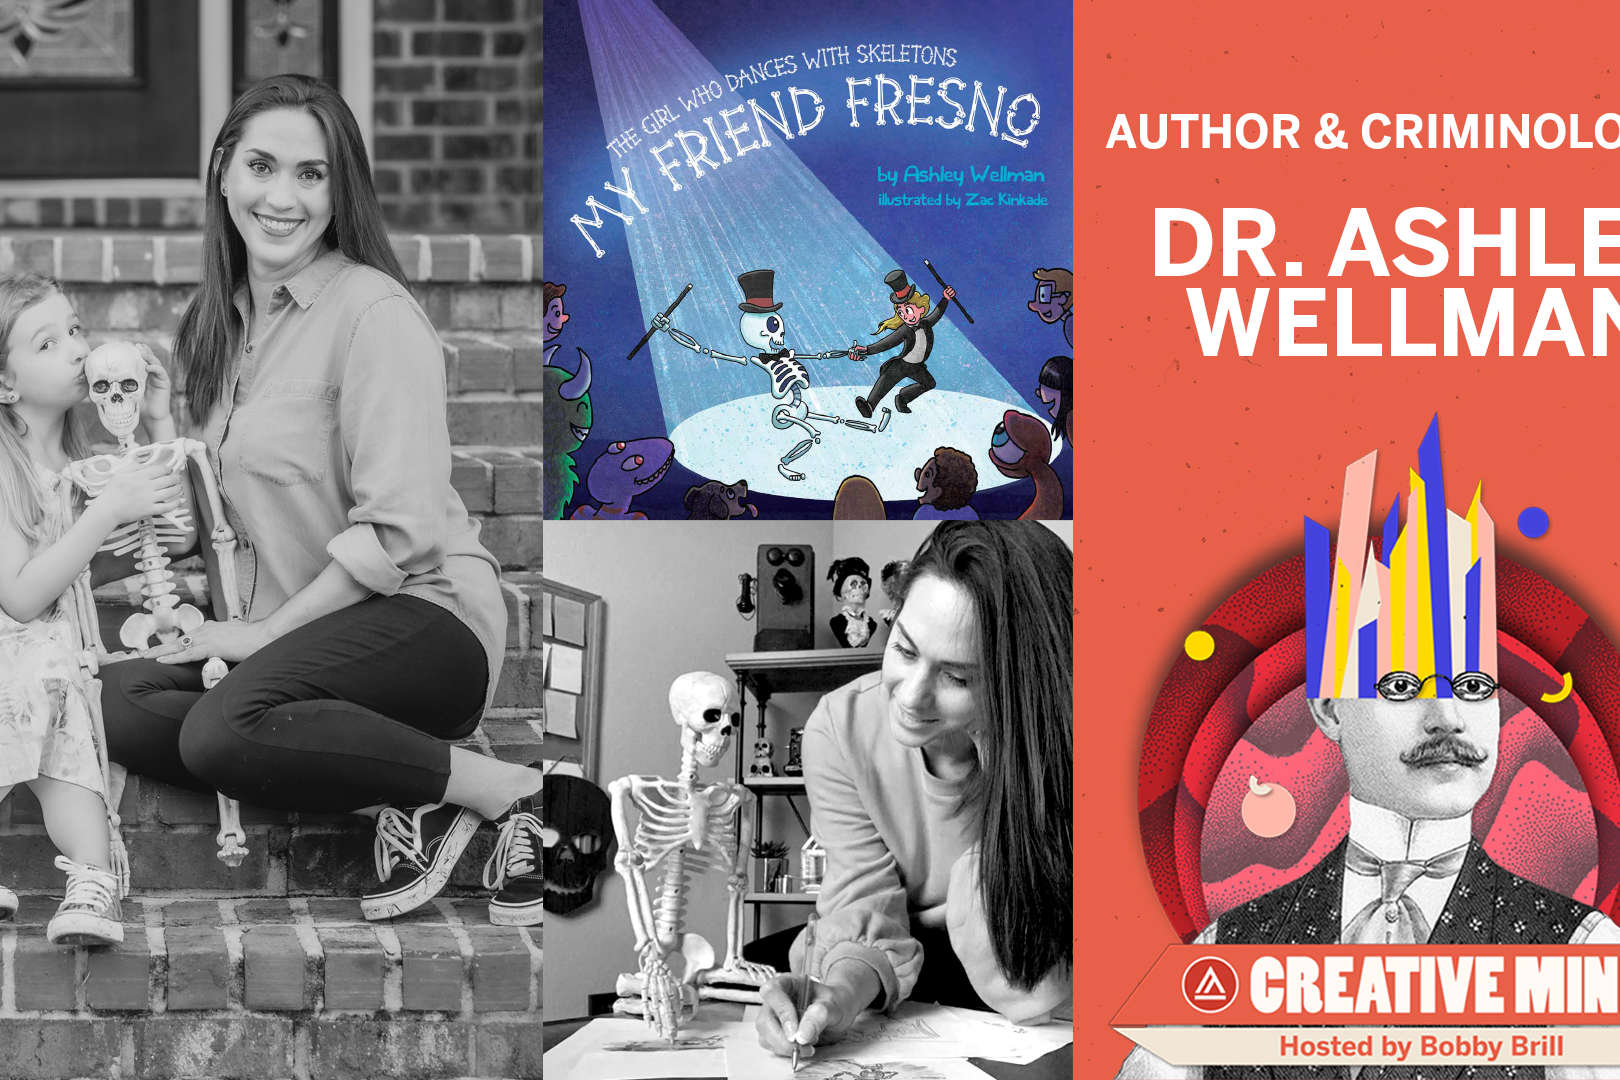 Creative Mind Podcast Ashley Wellman